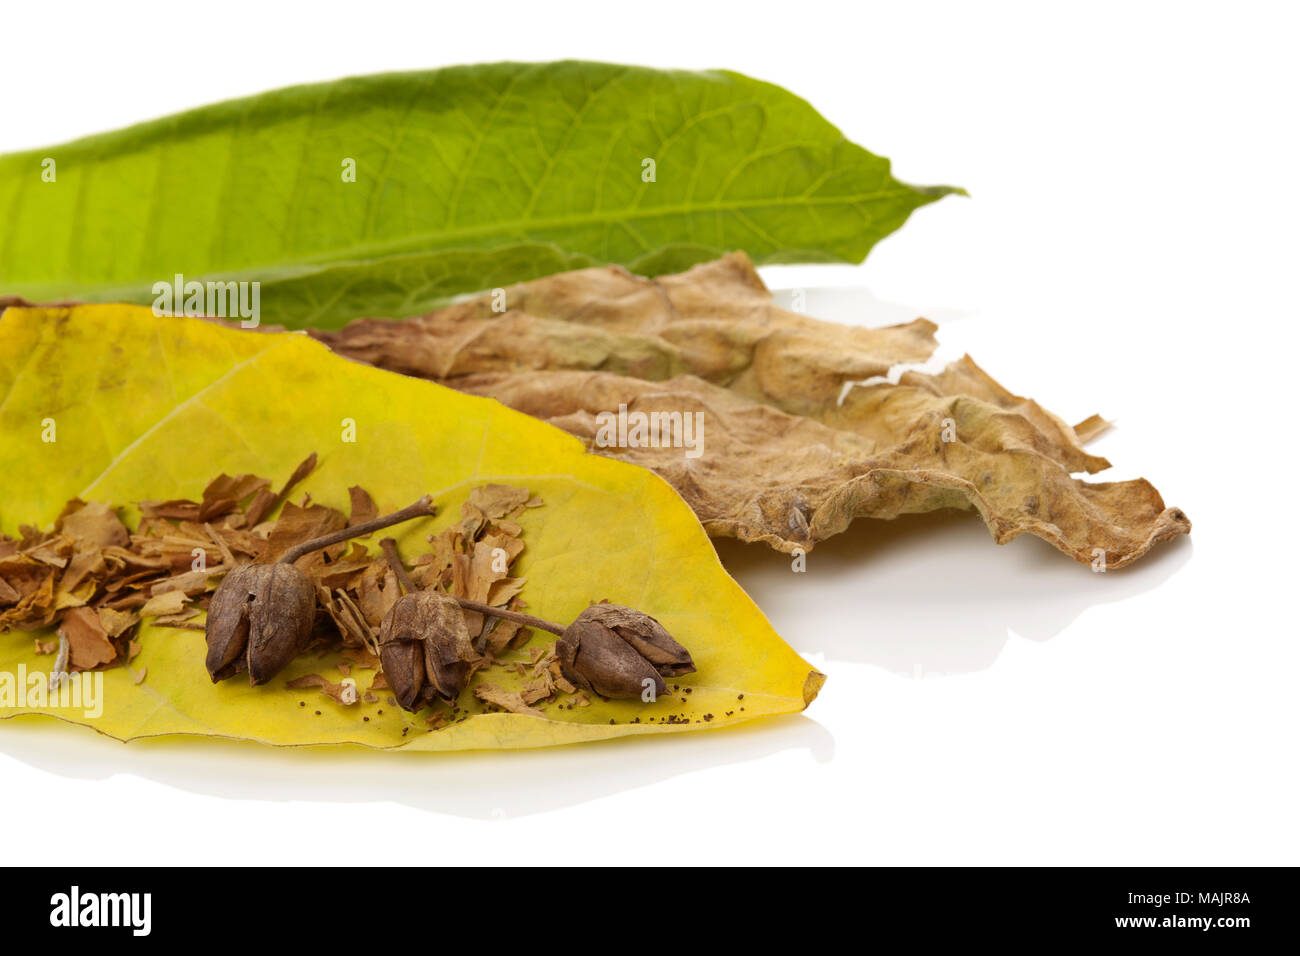 Tobacco dried blossom with dried and fresh tobacco leaves isolated on white background. - Stock Image